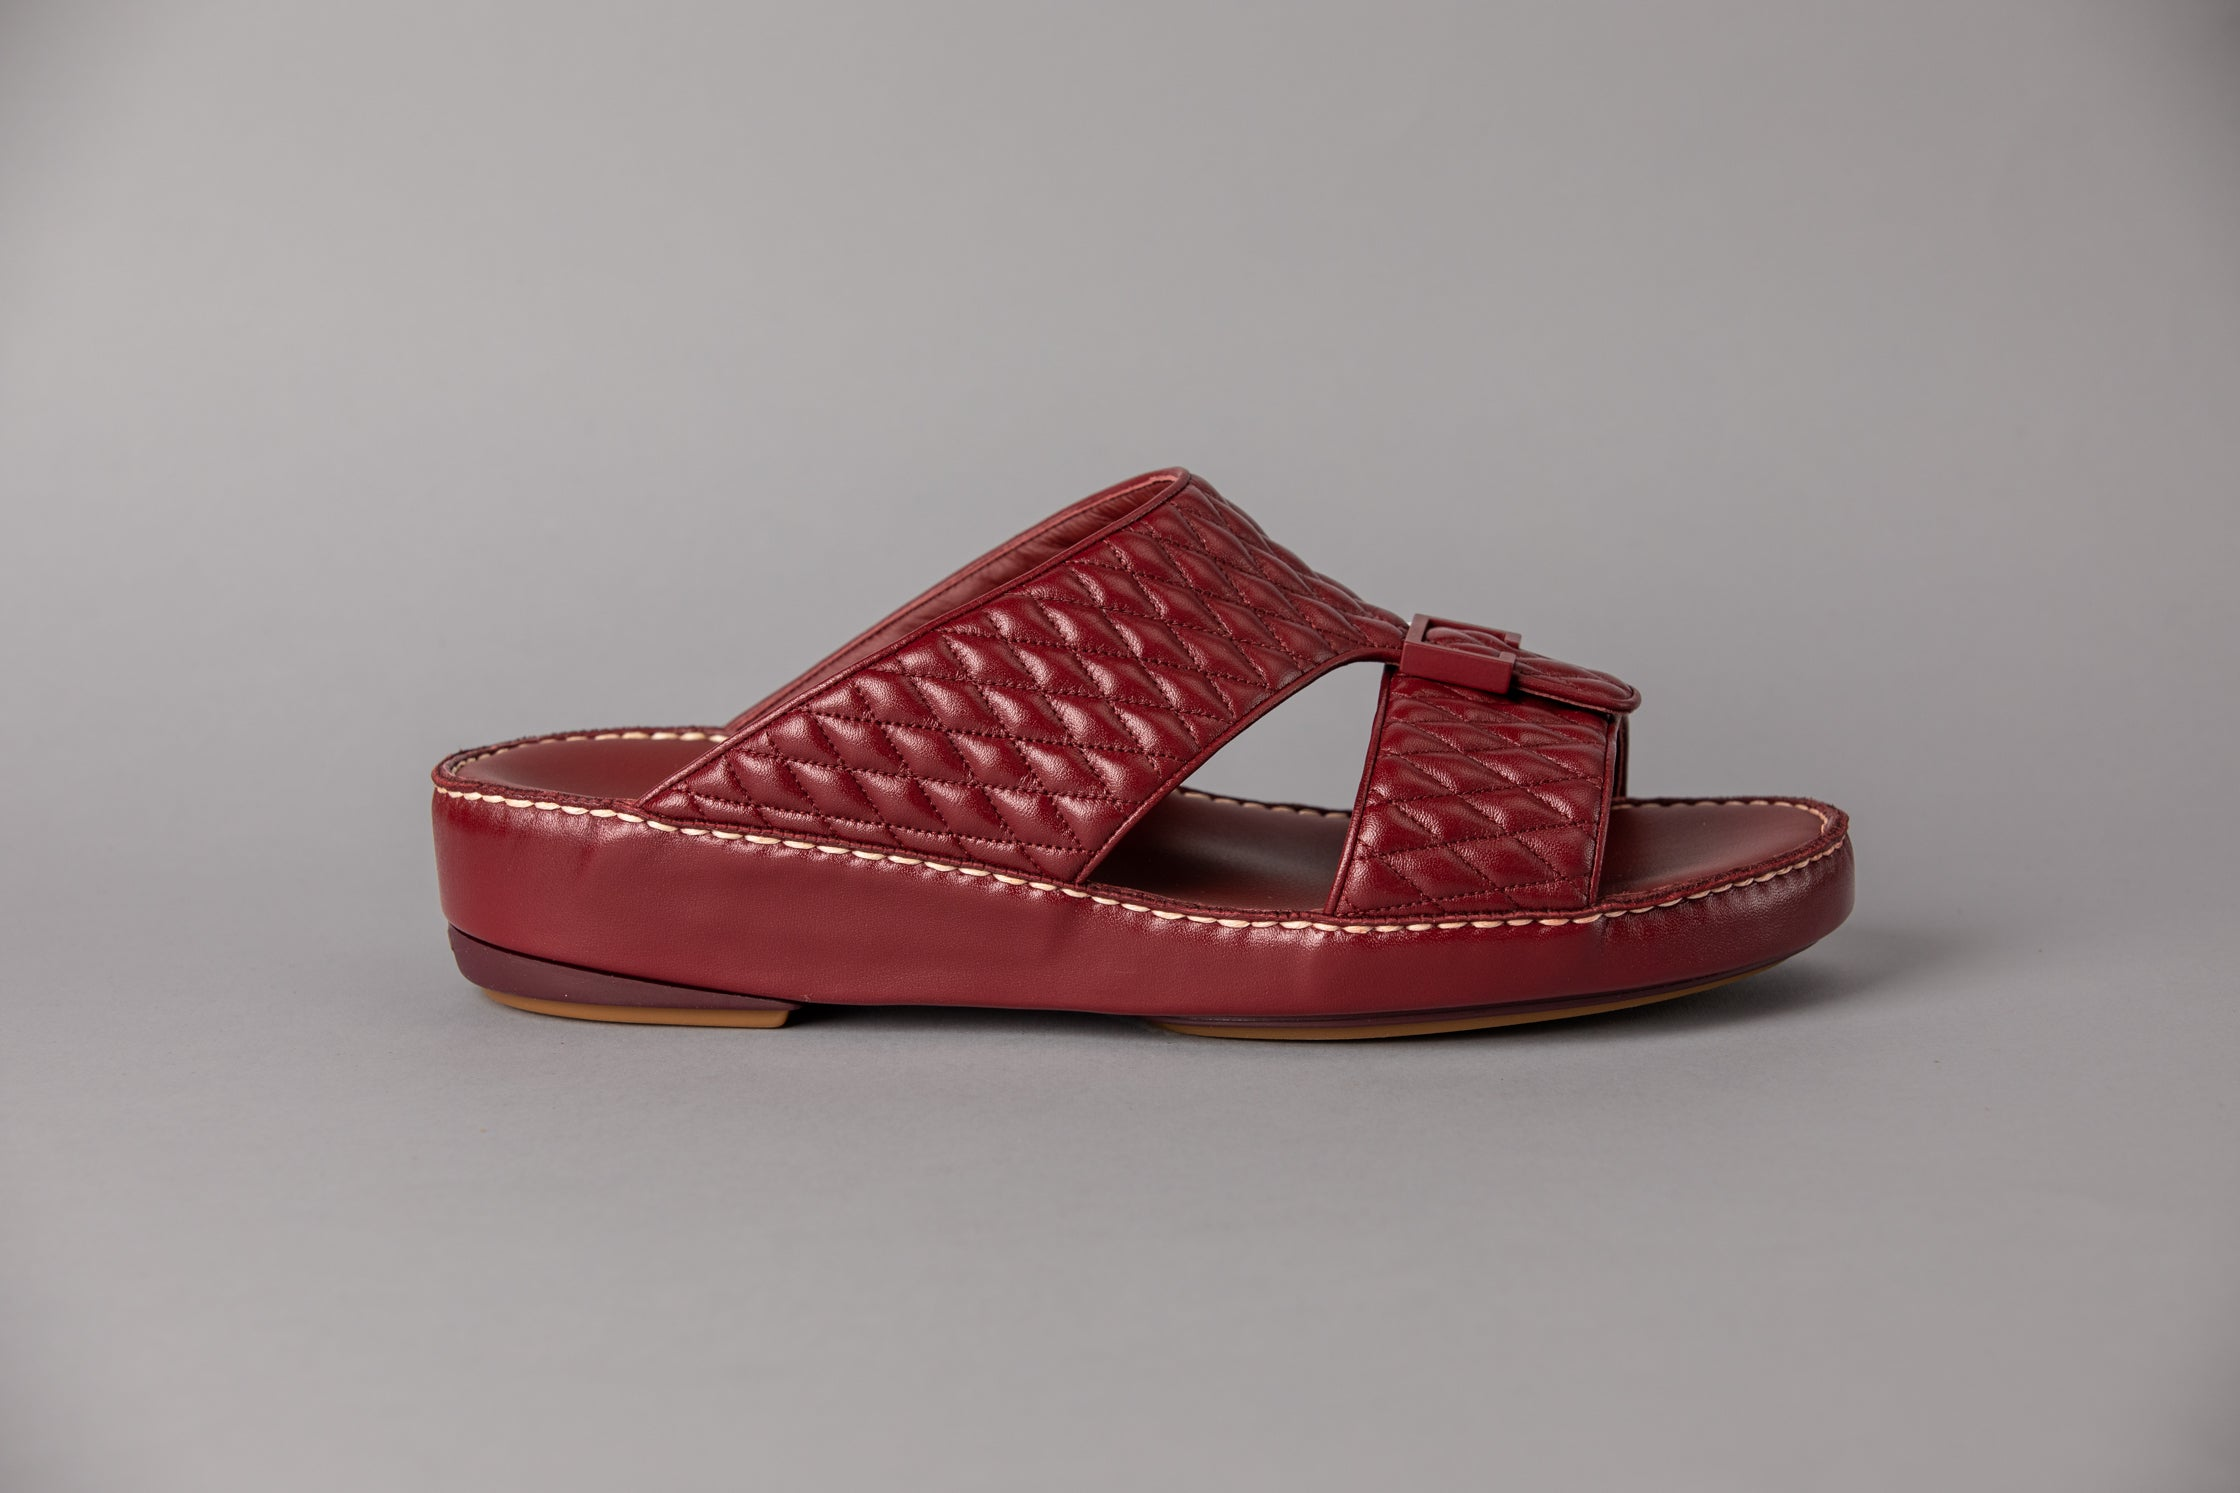 Aldo Diamond Red Wine Arabic Sandal (4061DA)